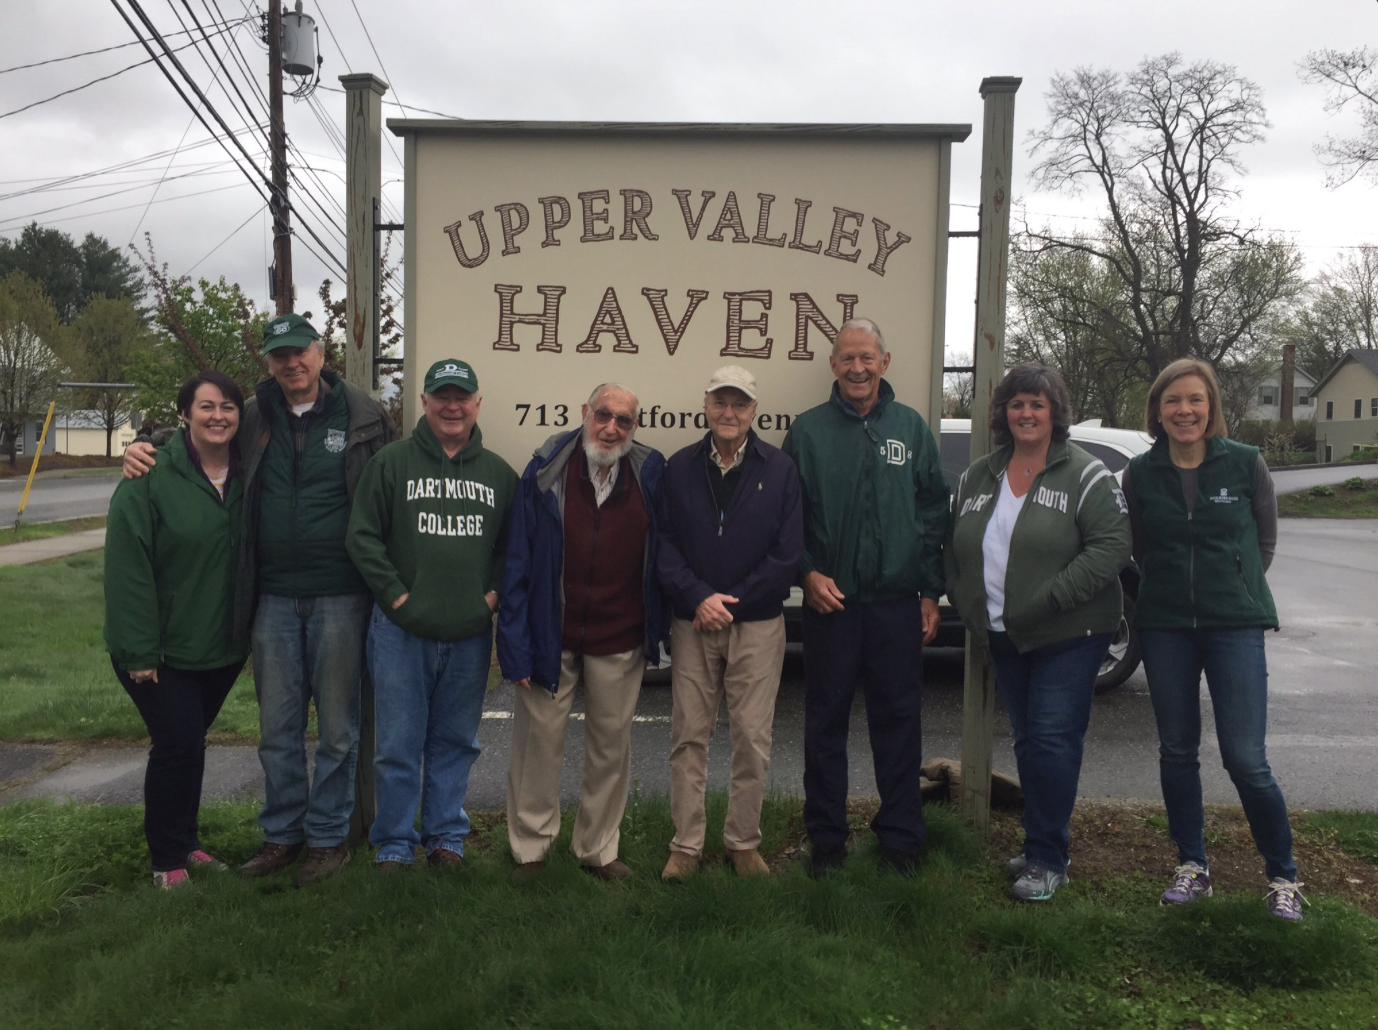 grounds cleanup for the Upper Valley Haven